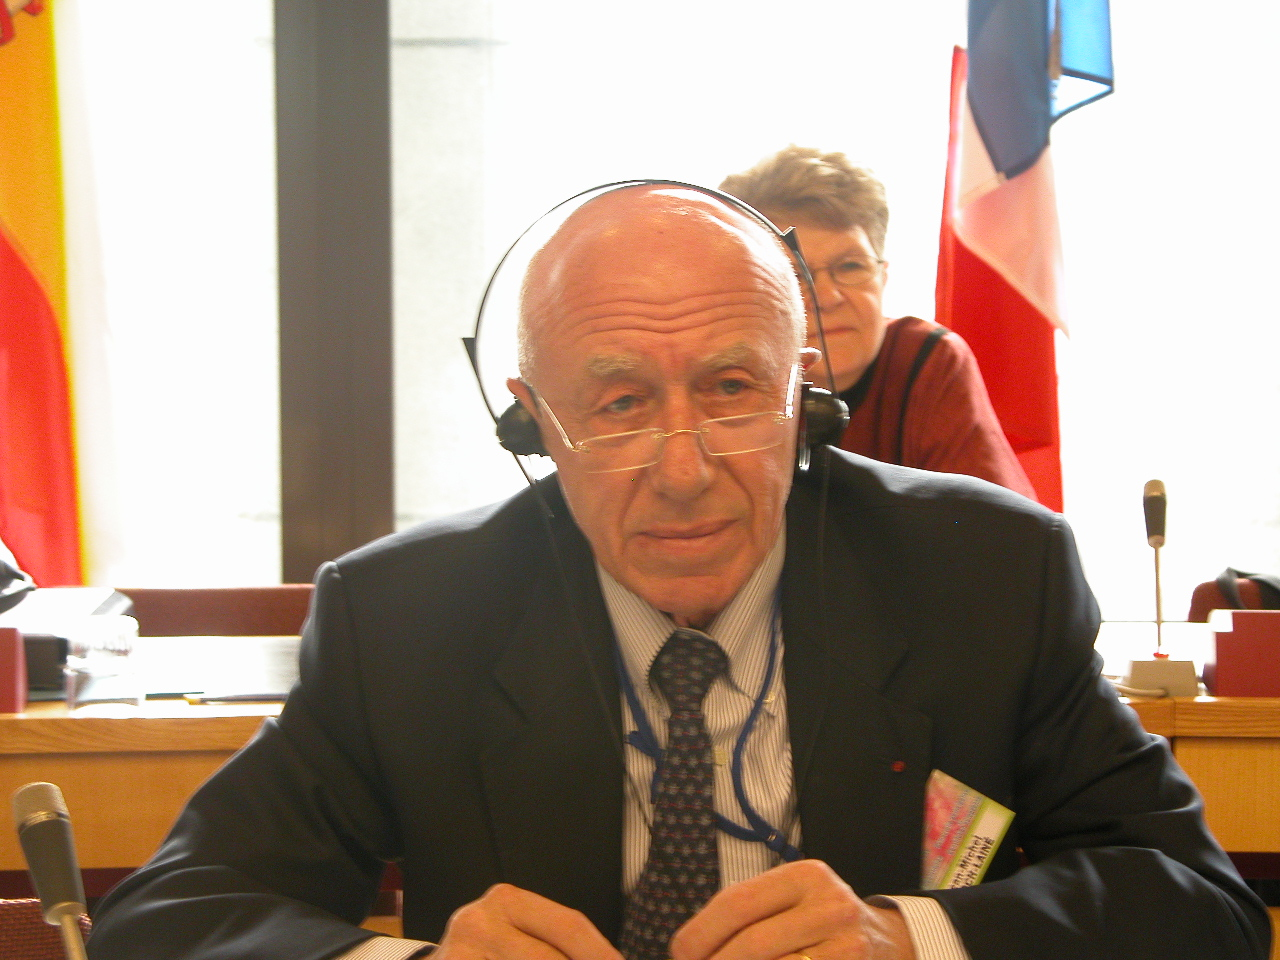 Mr Jean-Michel BLOCH-LAINÉ, member of the EESC Various Interests' Group